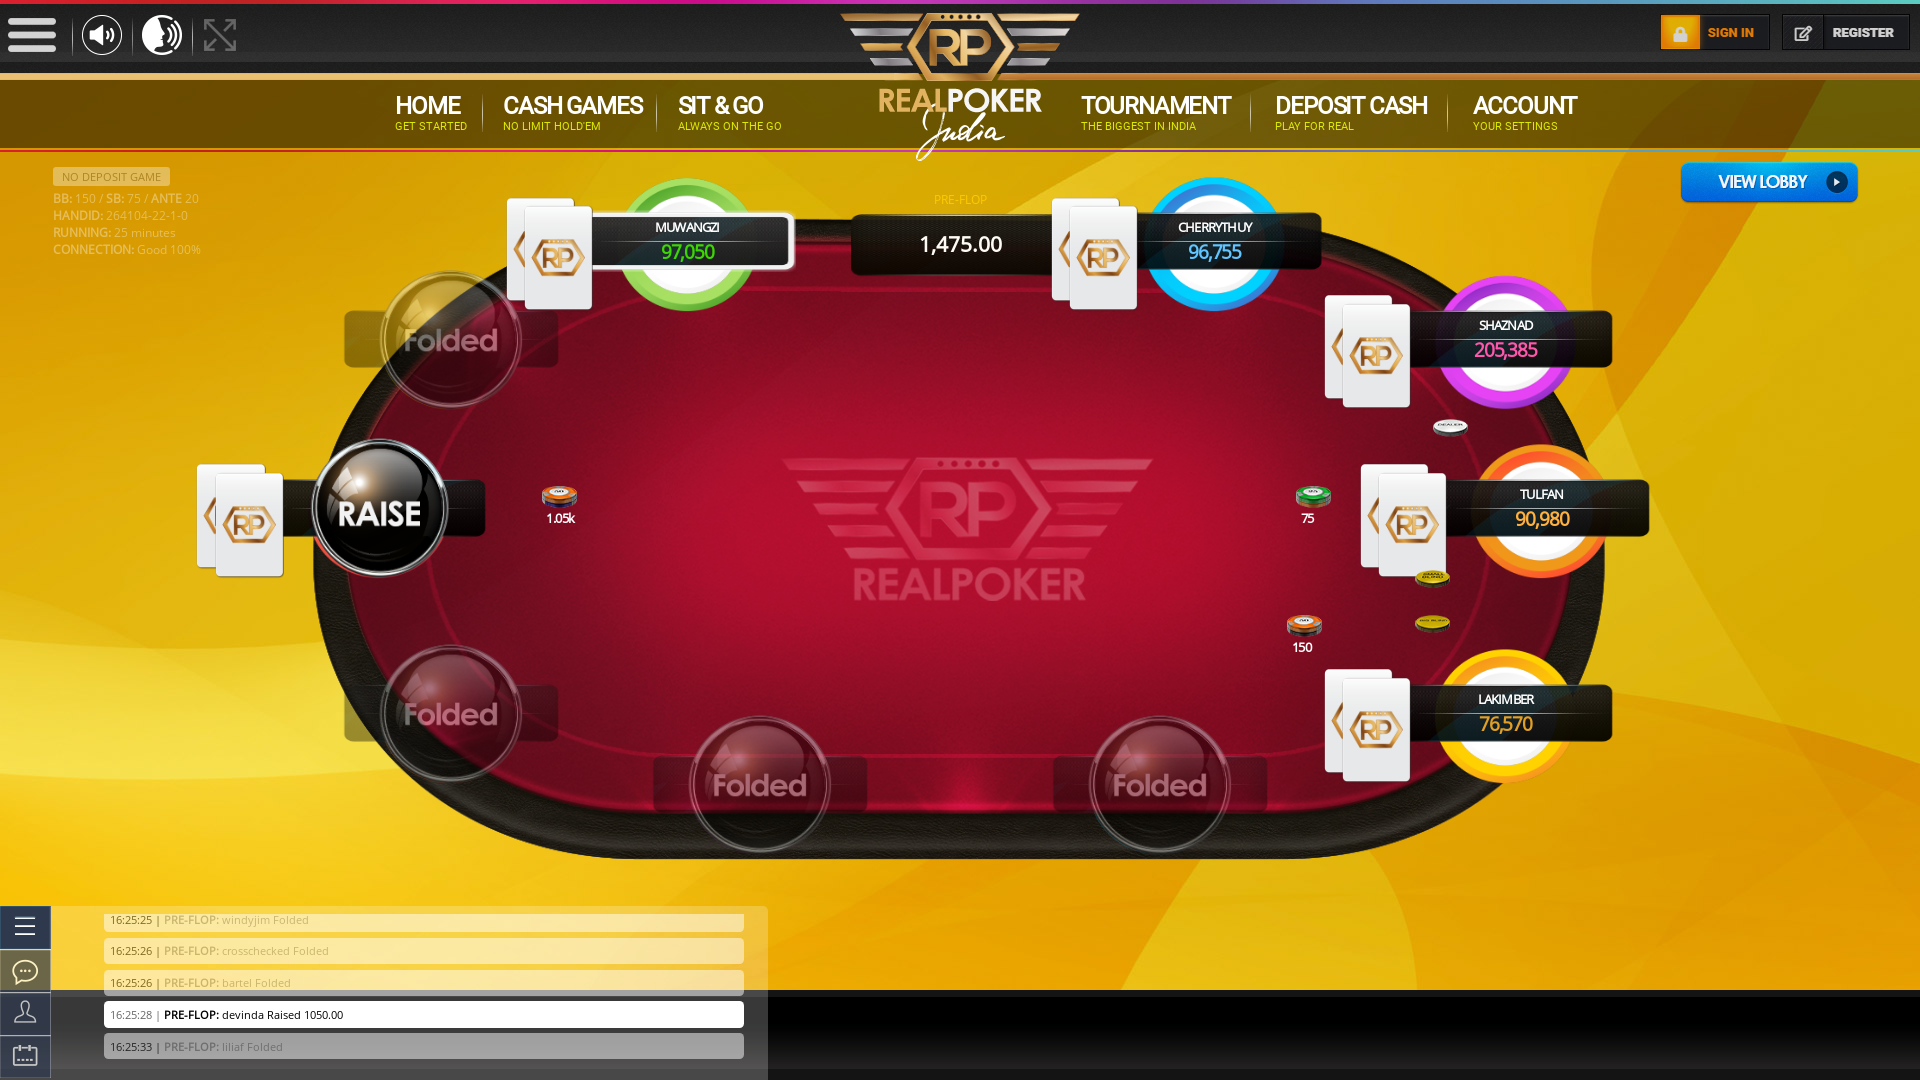 10 player texas holdem table at real poker with the table id 264104